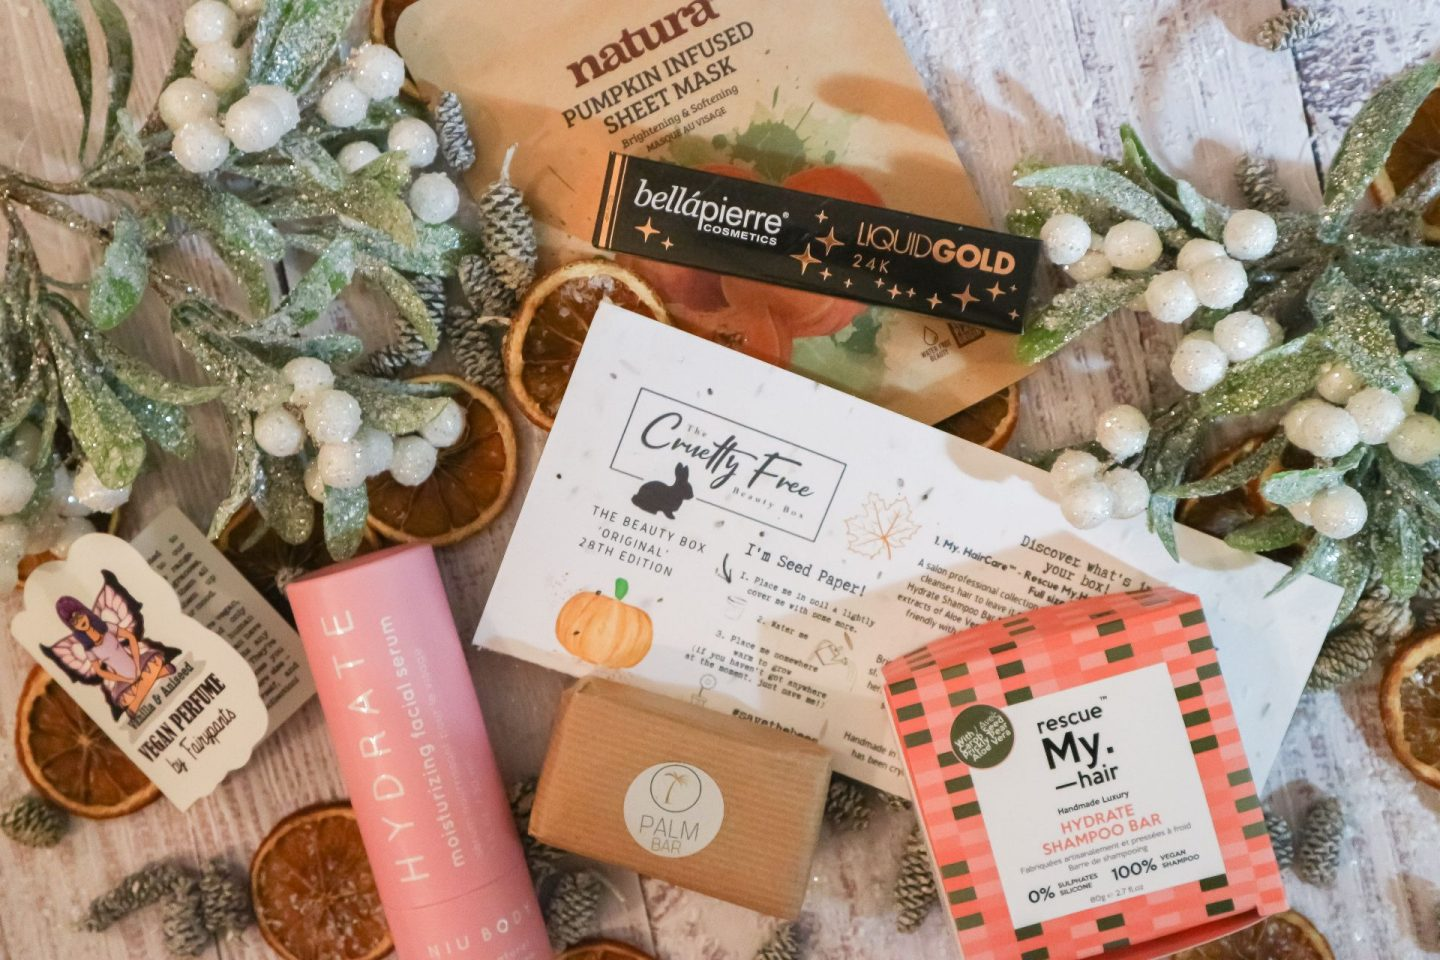 The Cruelty-Free Beauty Box